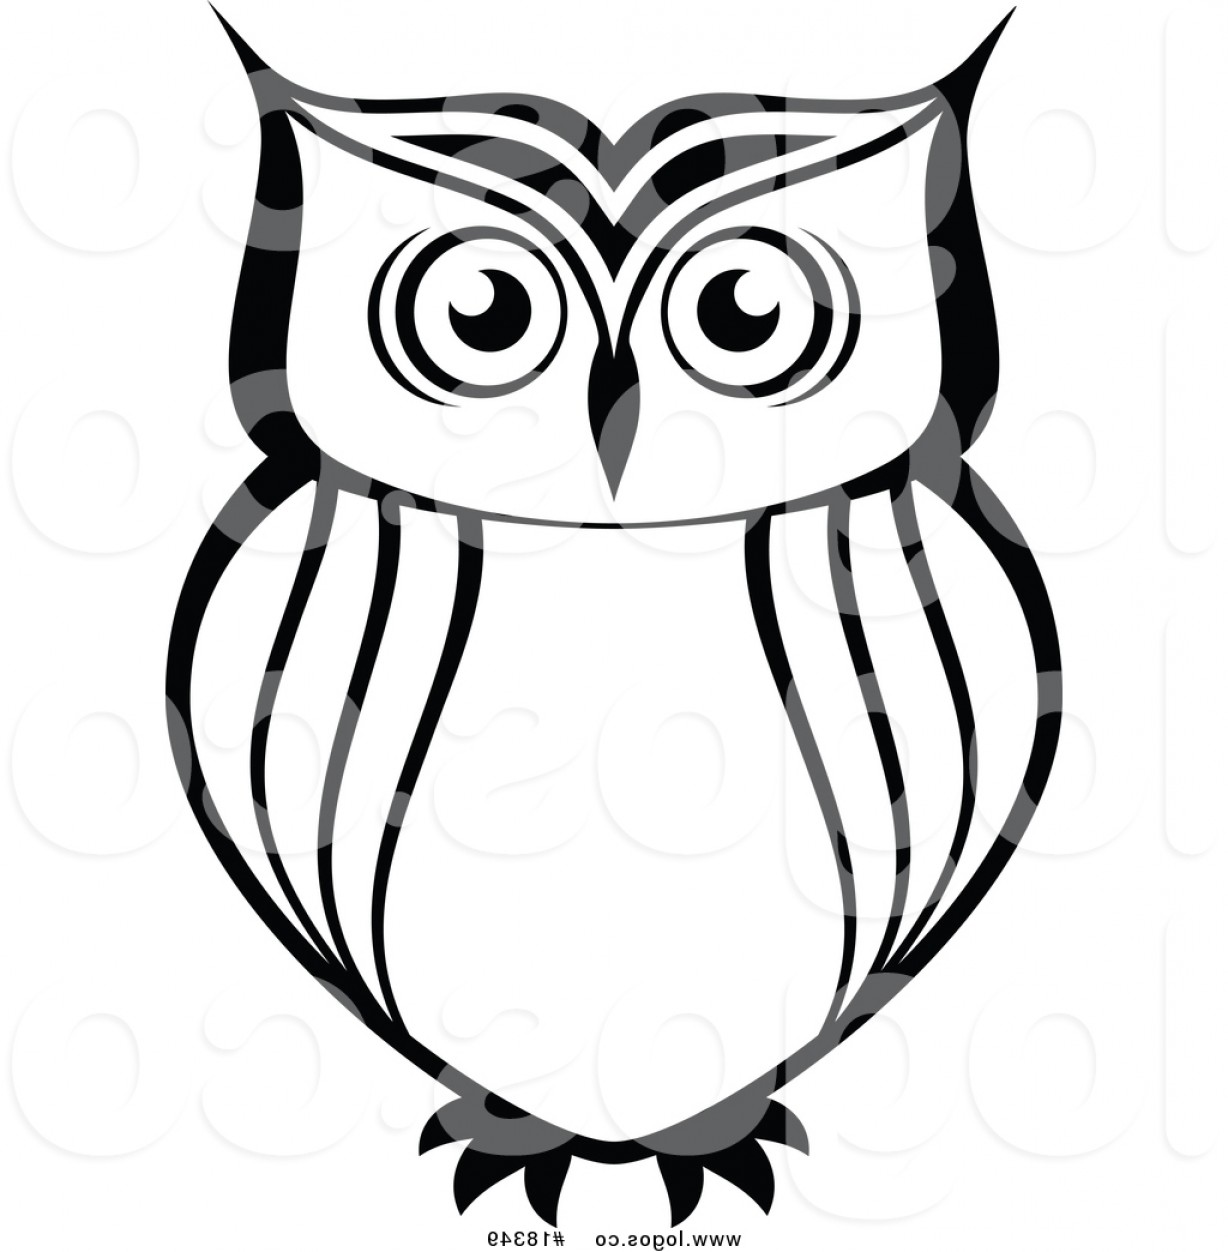 Simple Vector Logo: Royalty Free Vector Logo Of A Simple Black And White Owl By Vector Tradition Sm